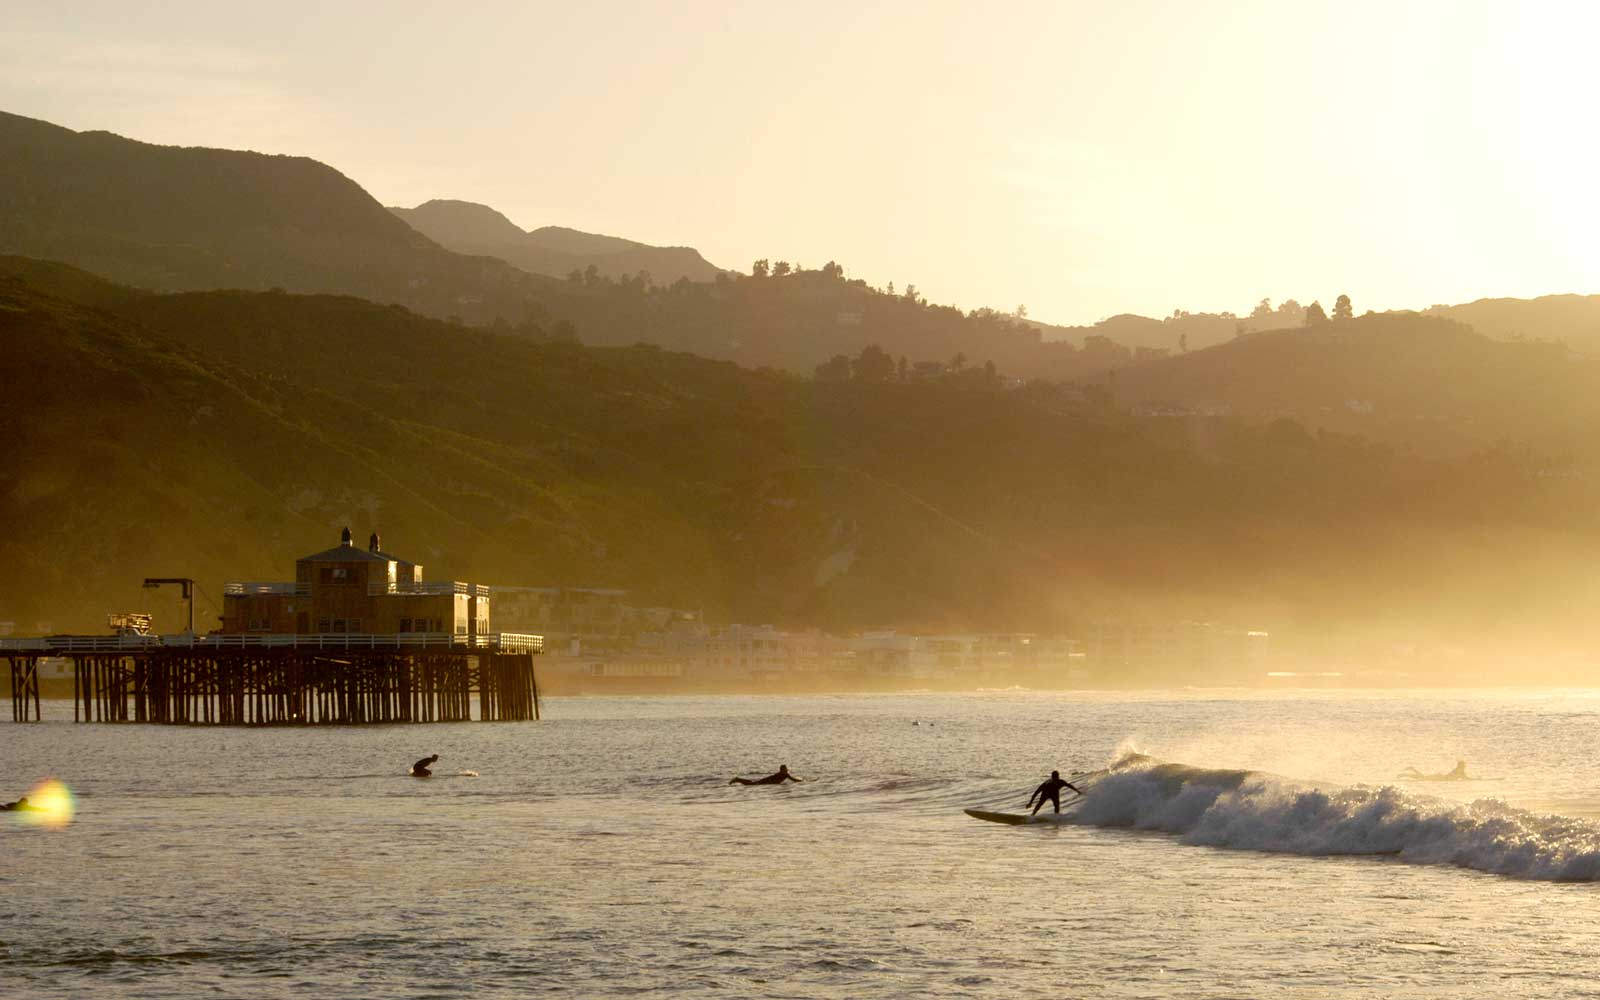 International Surfing Day - Surfing Spots Around the World